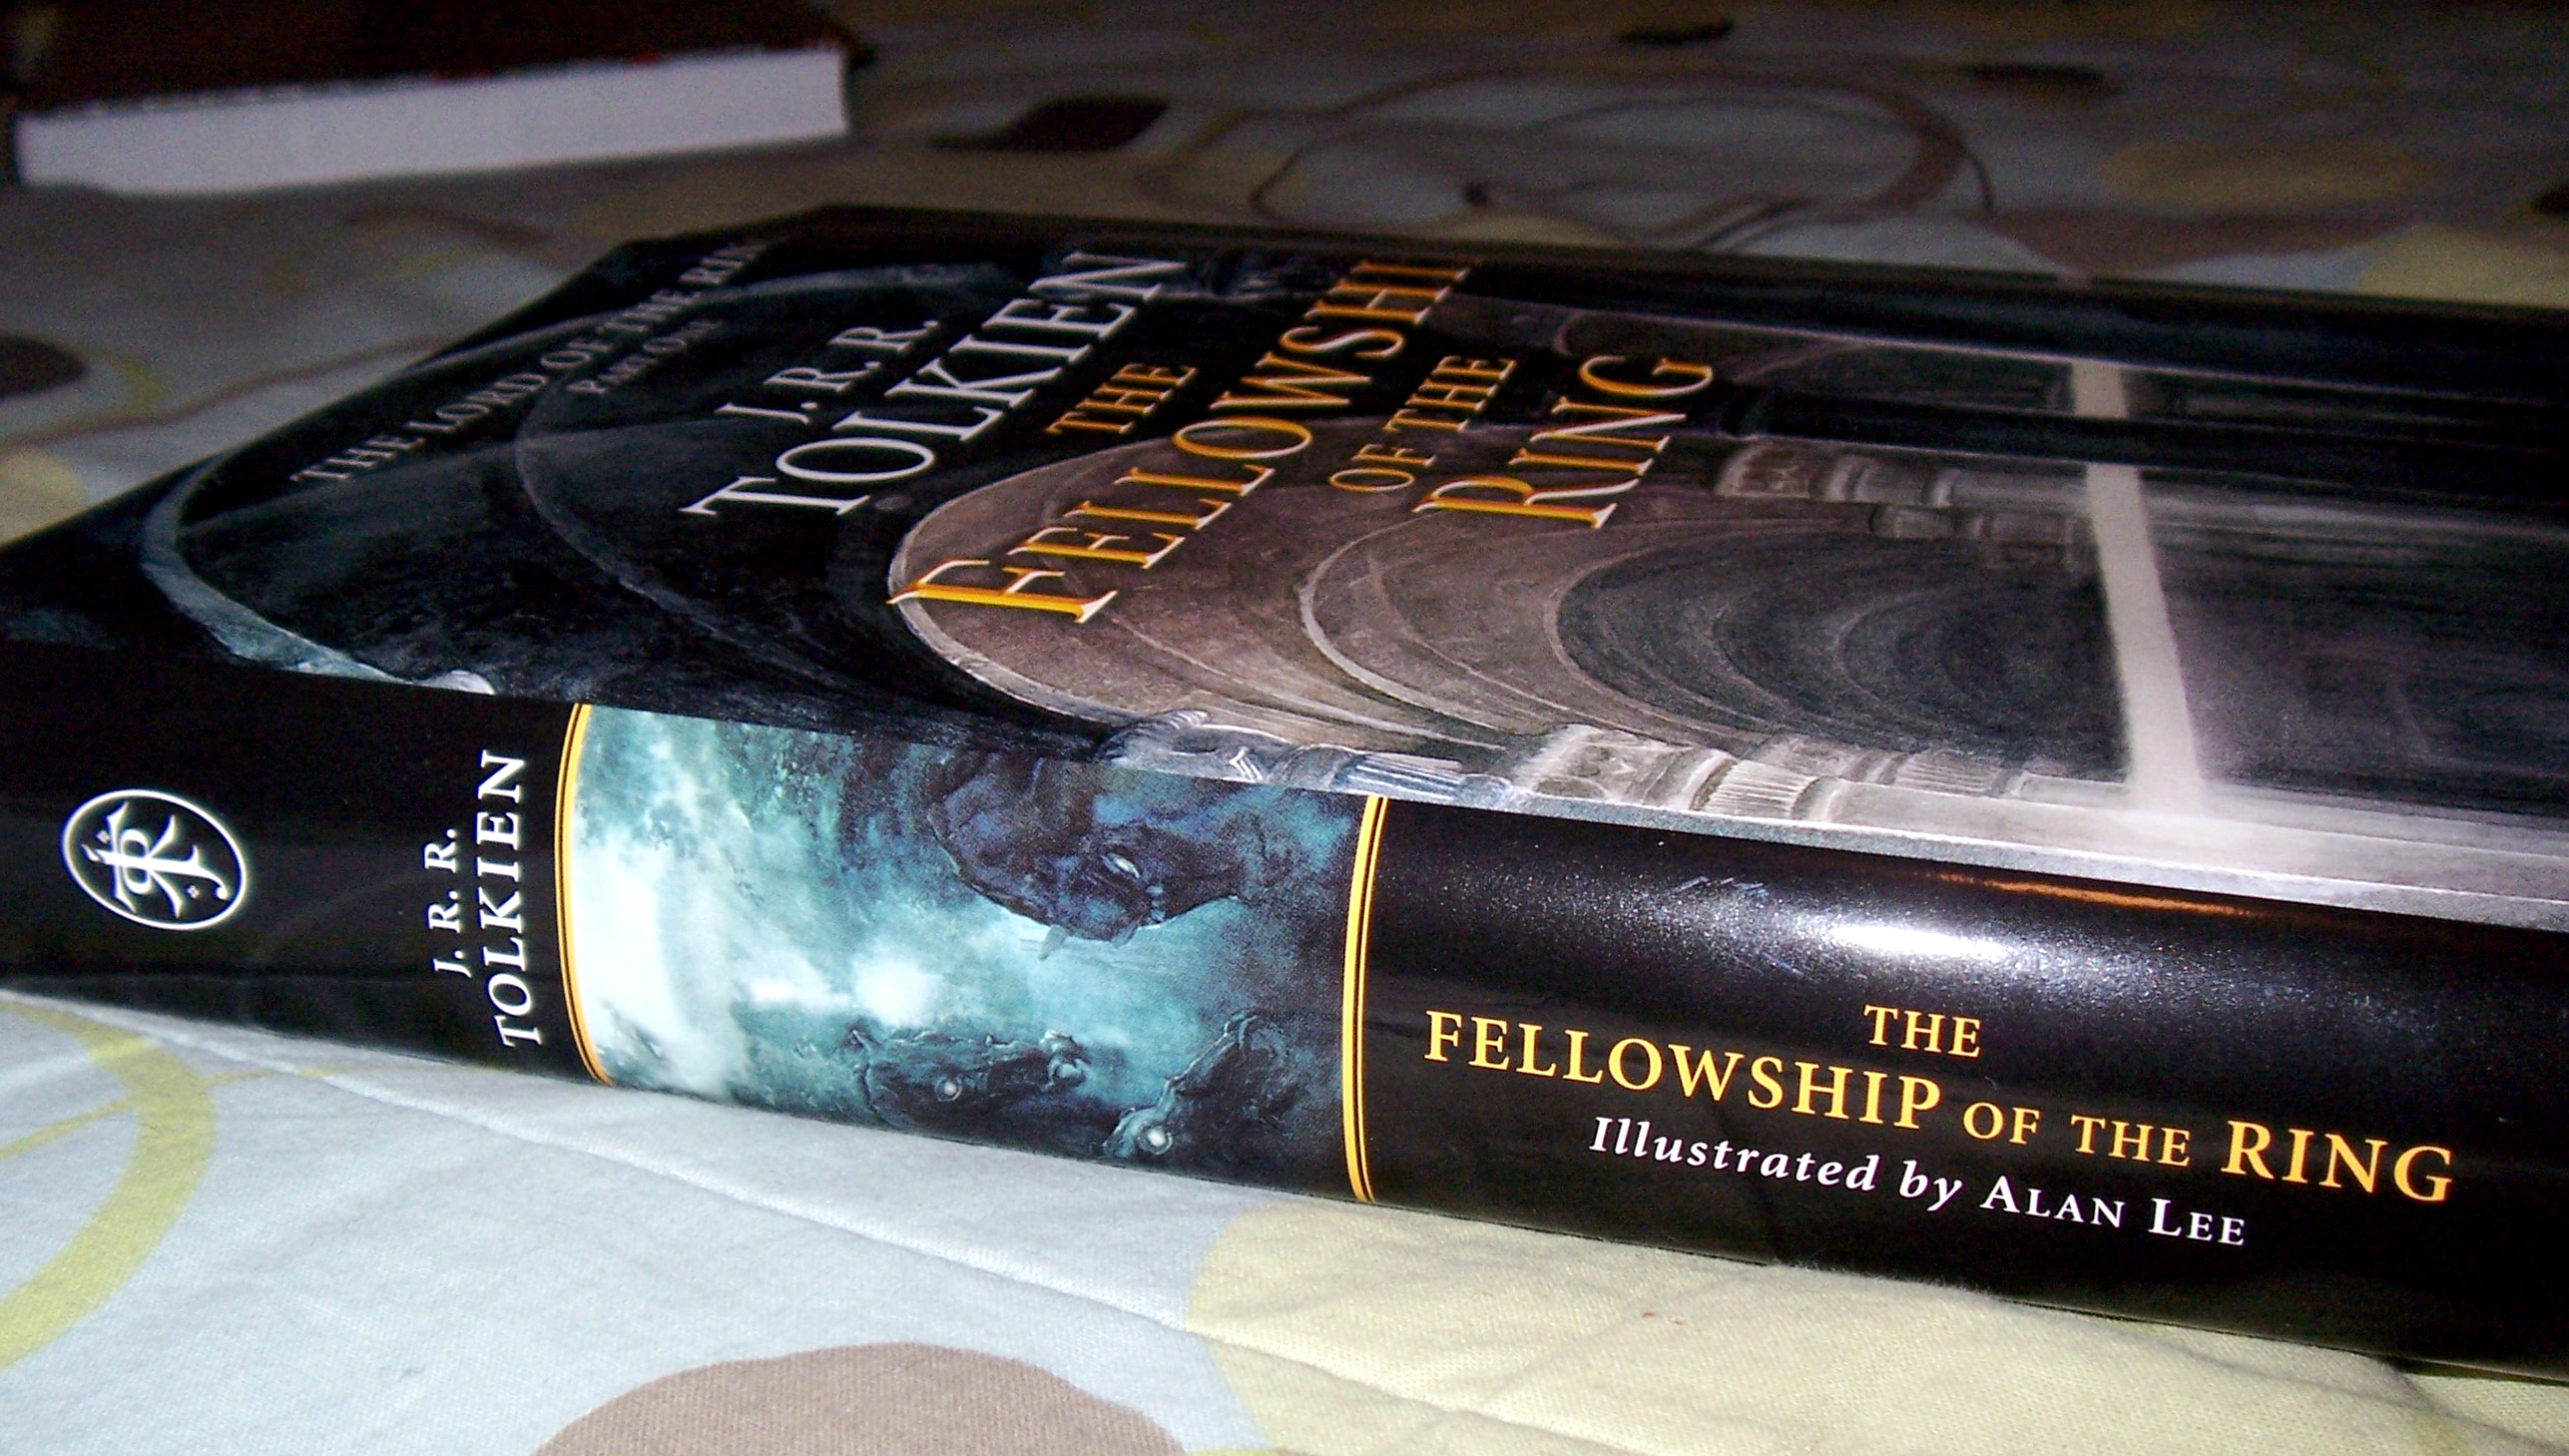 By the way, I finished reading The Hobbit and have started The Lord of the Rings.